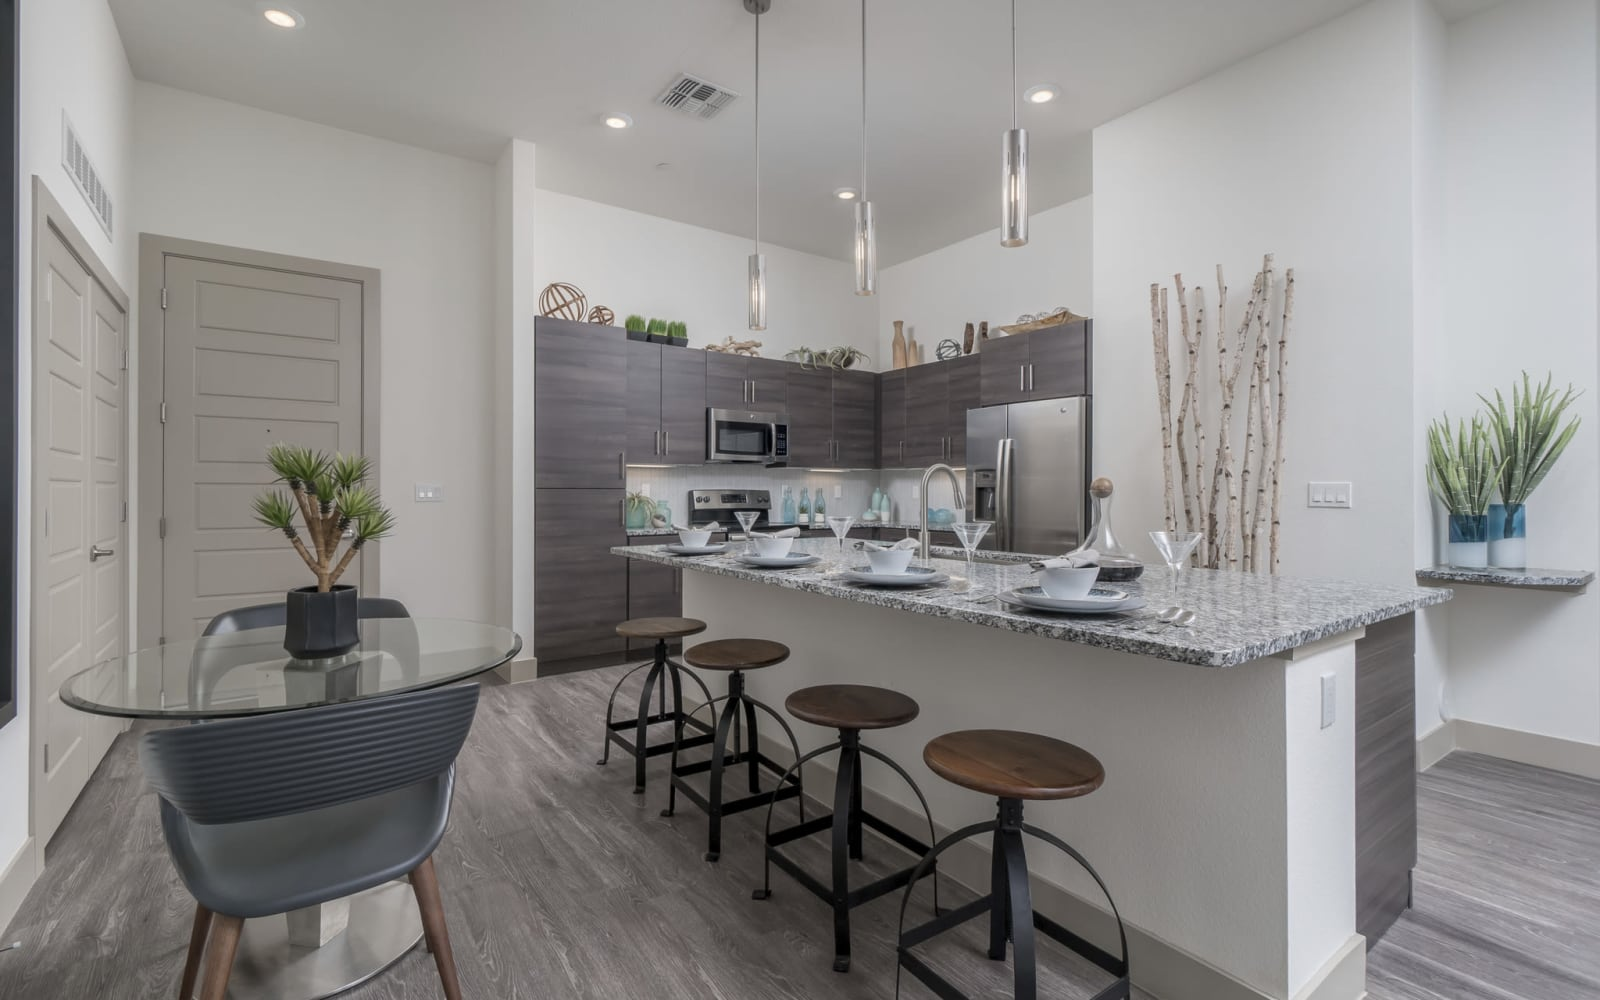 Seating in the dining room and kitchen at The District at Scottsdale in Scottsdale, Arizona